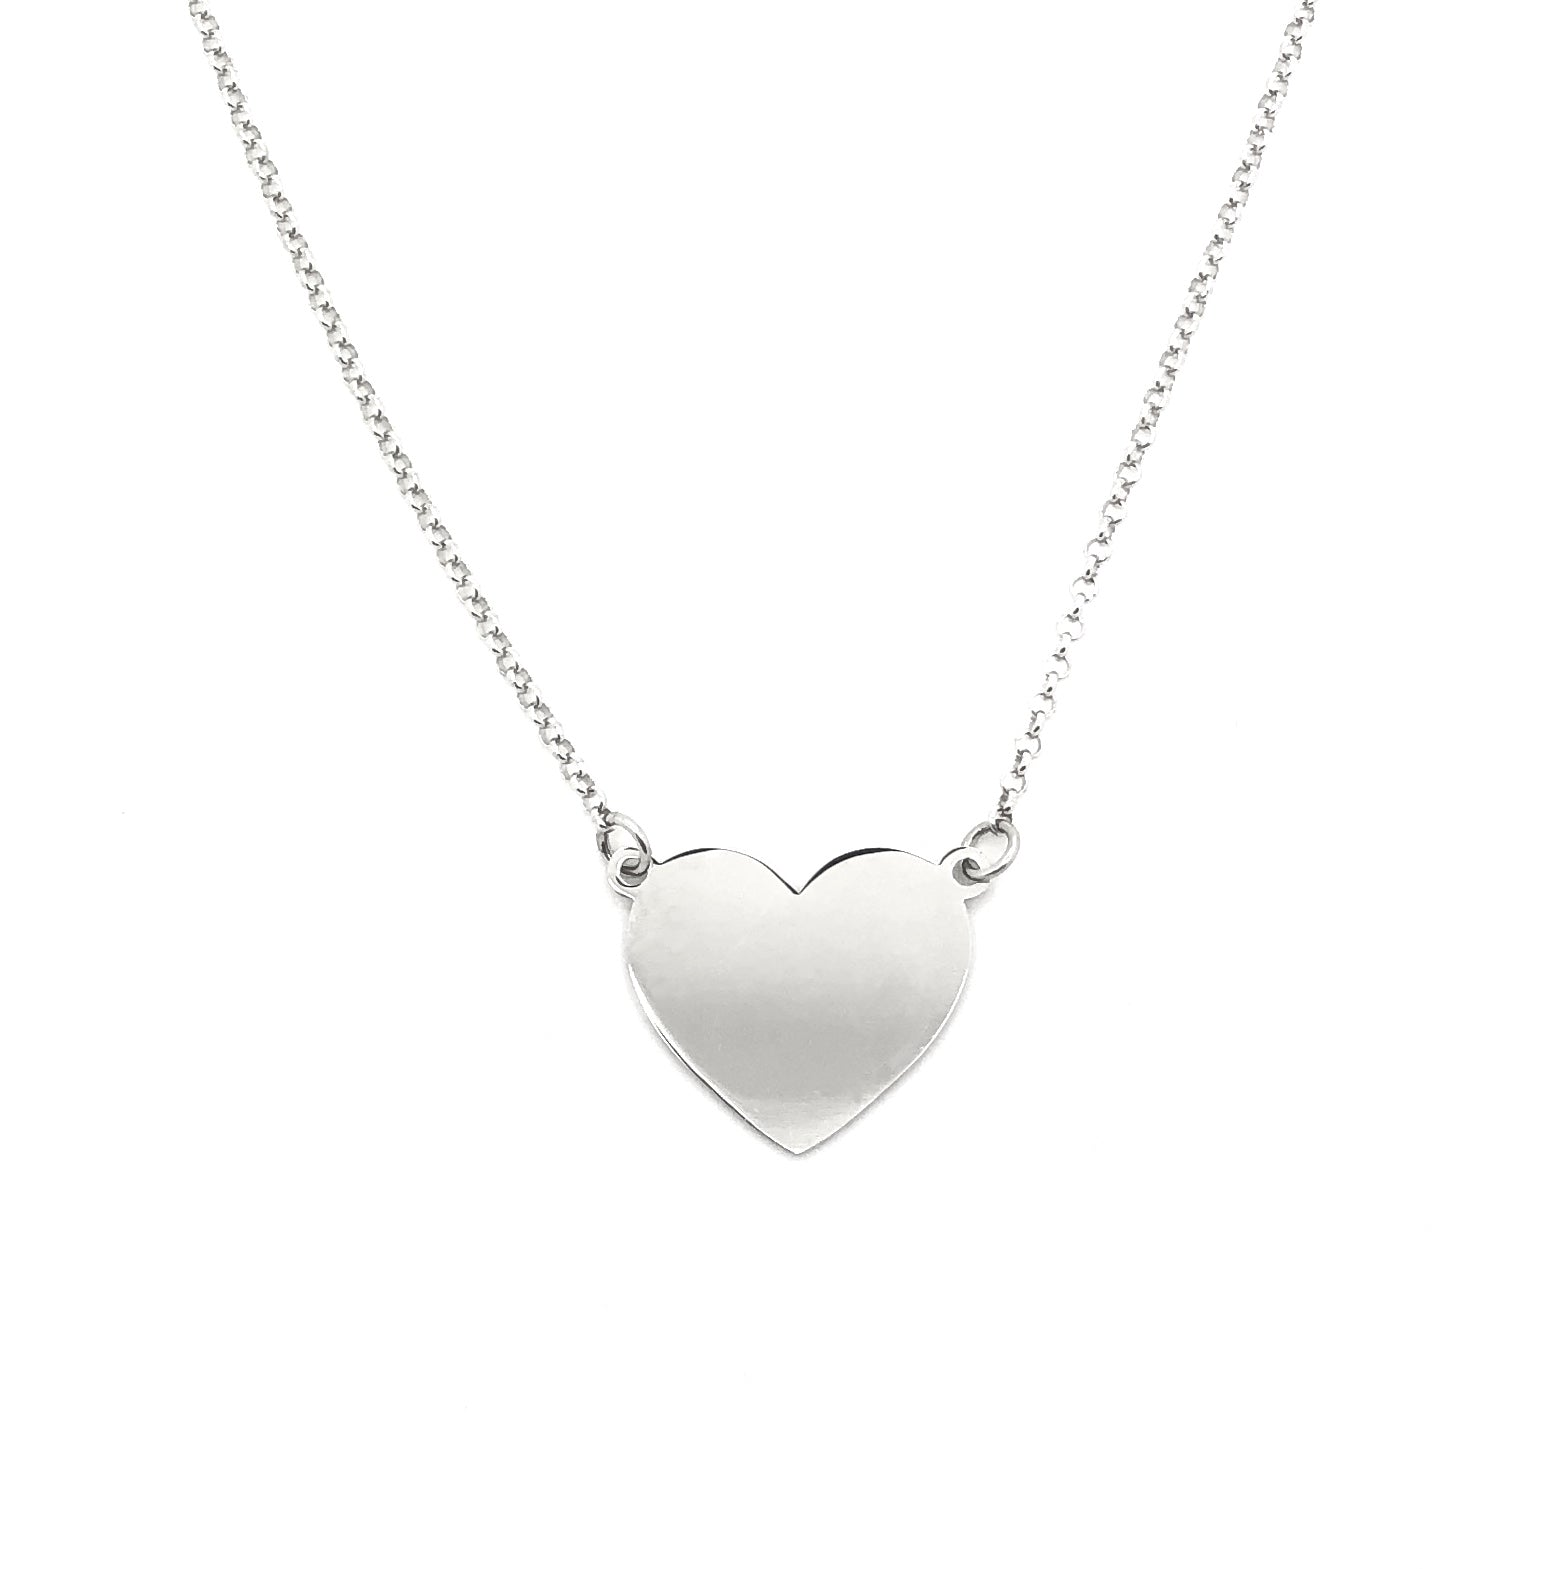 Argento 925 - Collana donna Big Heart - monility